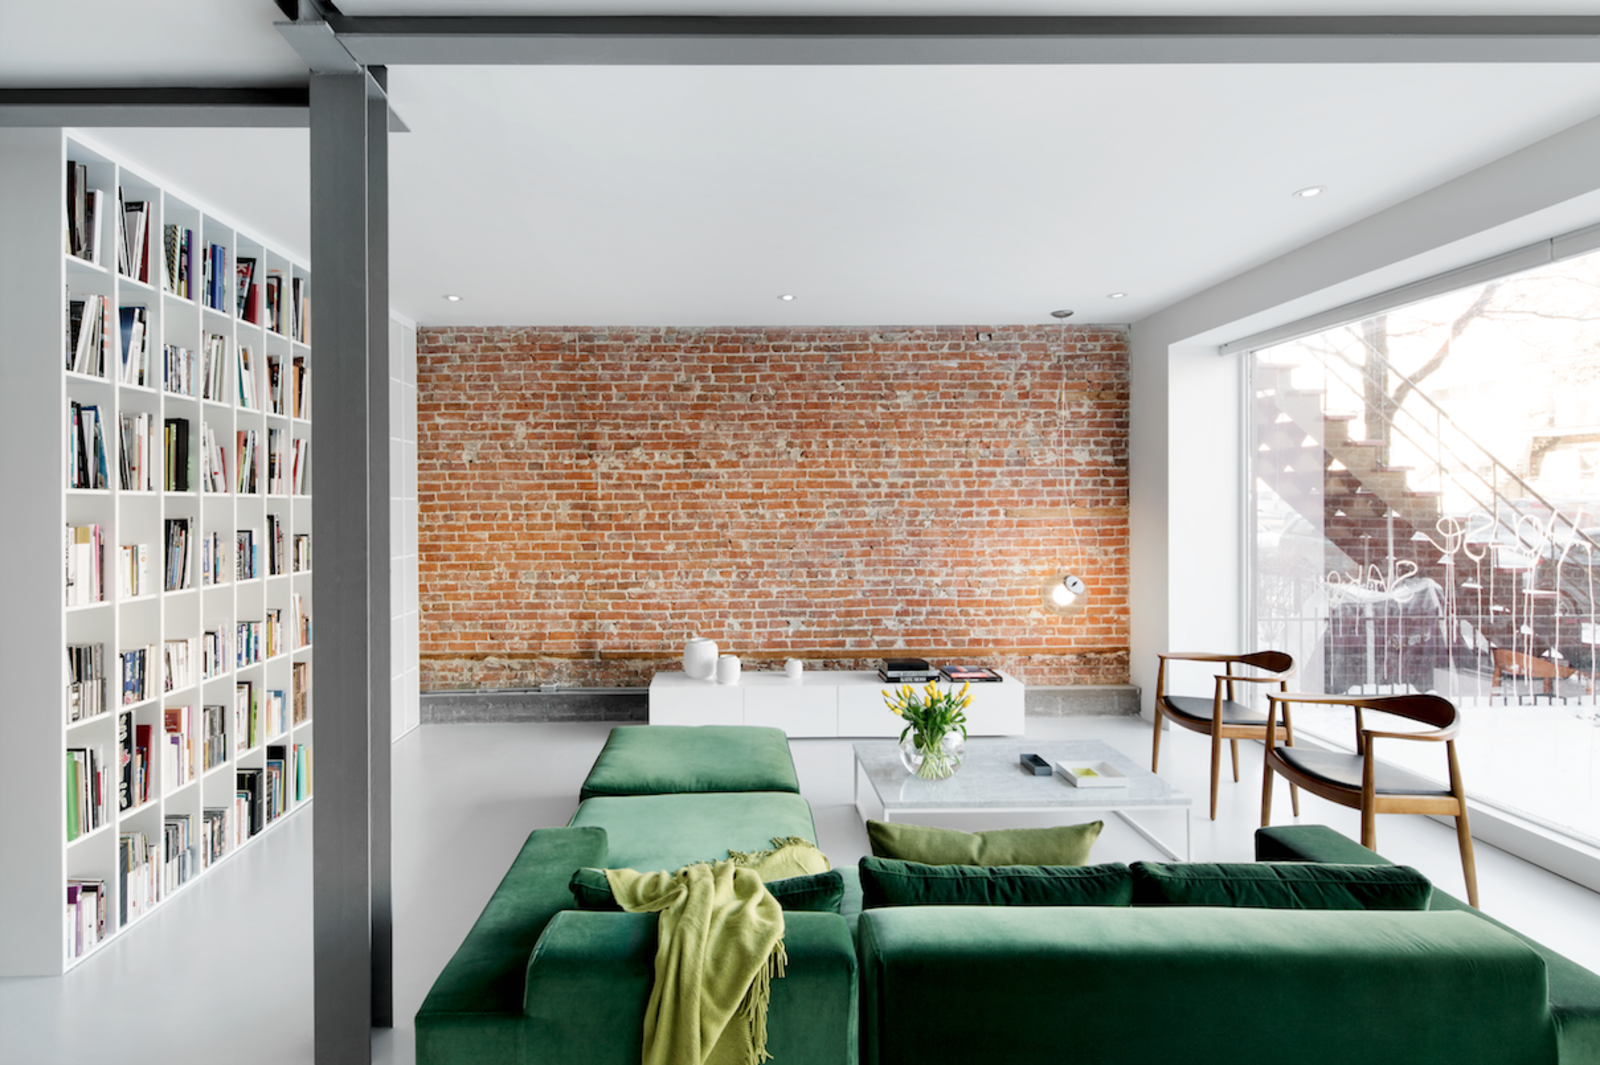 Goneau highlighted the red brick wall in the living room by leaving it bare and protecting it behind museum-quality glass. The space also features a floor-to-ceiling window that's coated on the outside with a reflective film, letting residents keep their curtains open by day without fear of being seen from the street. The green sofa is by St-Laurent Domison and the white oak chairs are by Hans Wegner. All other furniture is custom. Tagged: Living Room, Coffee Tables, Pendant Lighting, Bookcase, Chair, Console Tables, Sectional, and Concrete Floor.  Photo 1 of 10 in Revealing the Pros and Cons of Exposed Brick and How to Take Care of It from A Futuristic Apartment with a Glass-Enclosed Bedroom